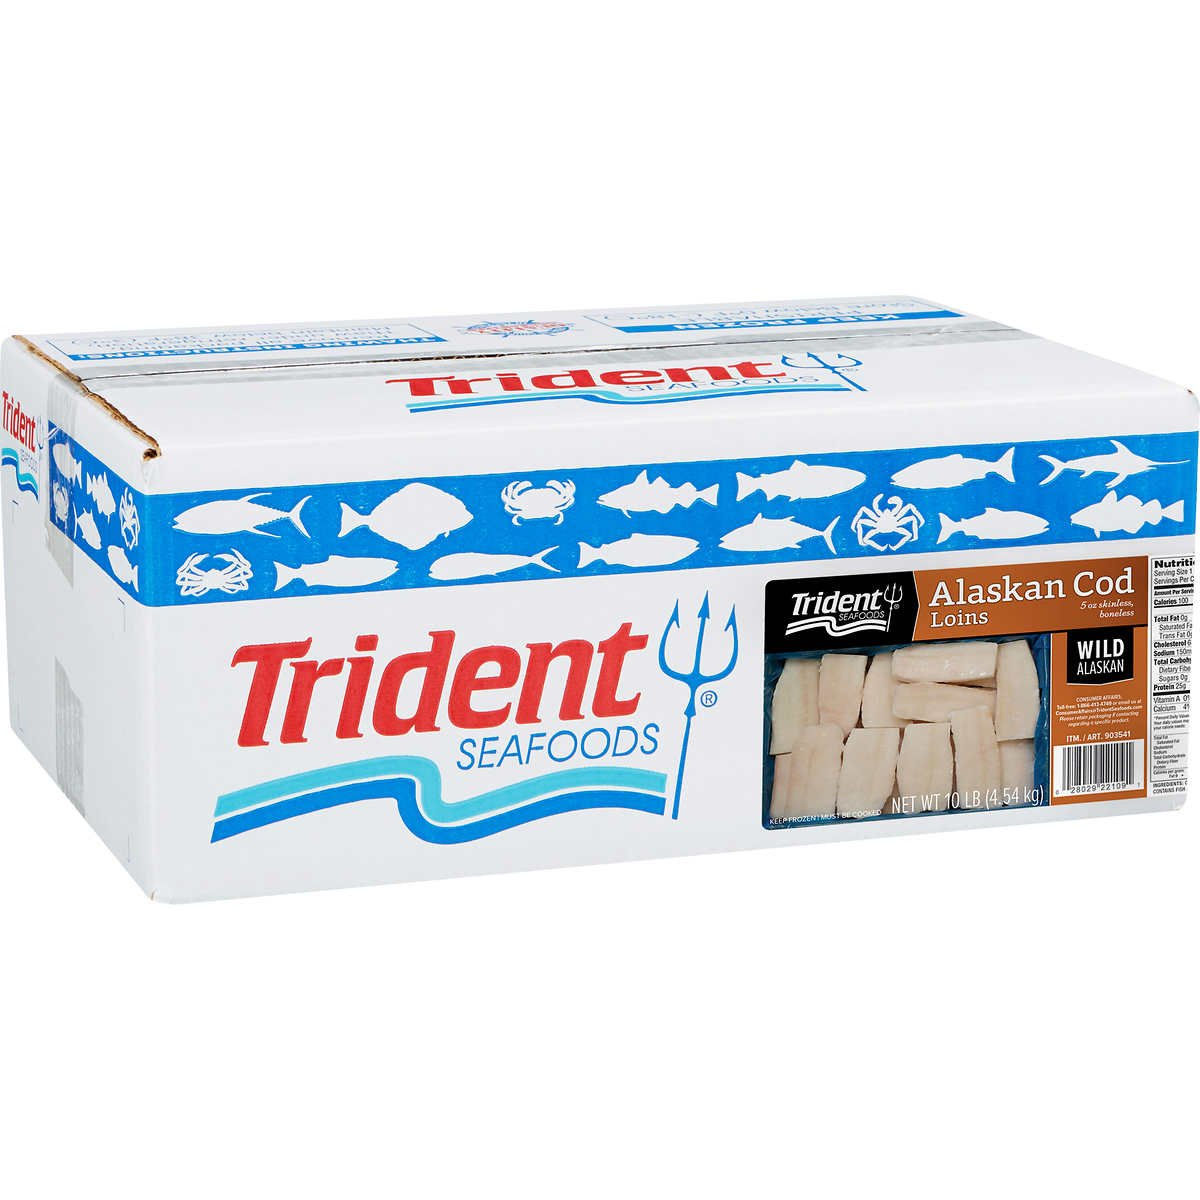 Trident 10lb Wild all-natural Alaskan Cod Loins Pre-Portioned 5-8 oz Fillet Seafood Fish